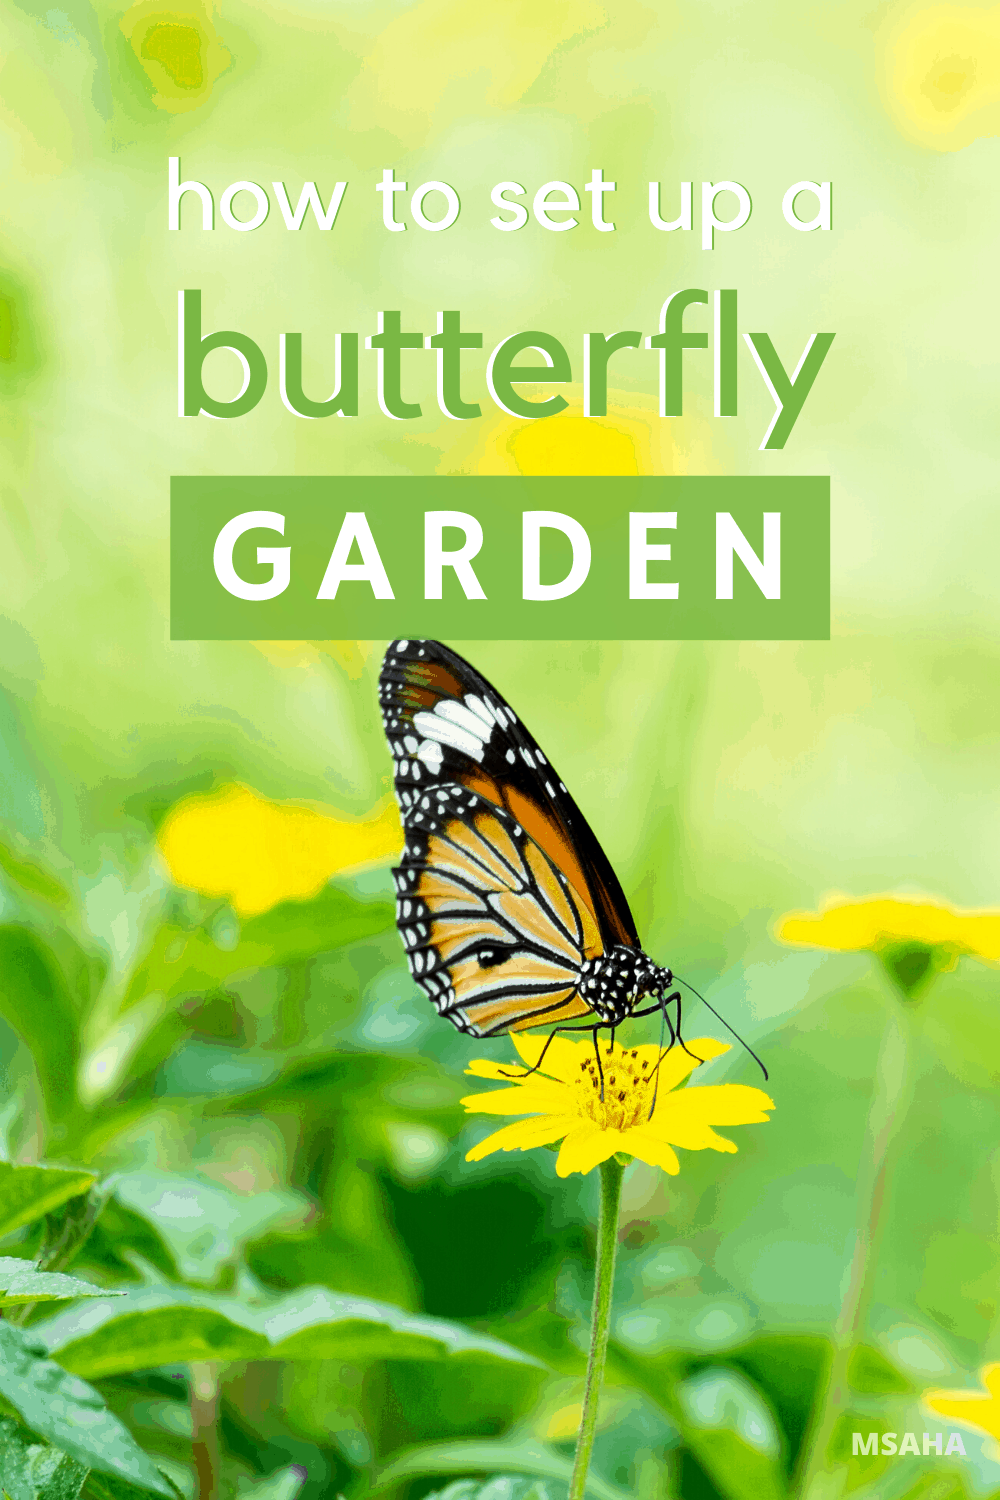 Springtime is here, so let's learn how to set up a butterfly or hummingbird garden the right way with these helpful tips to help you this season. #garden #butterfly #hummingbird via @mystayathome